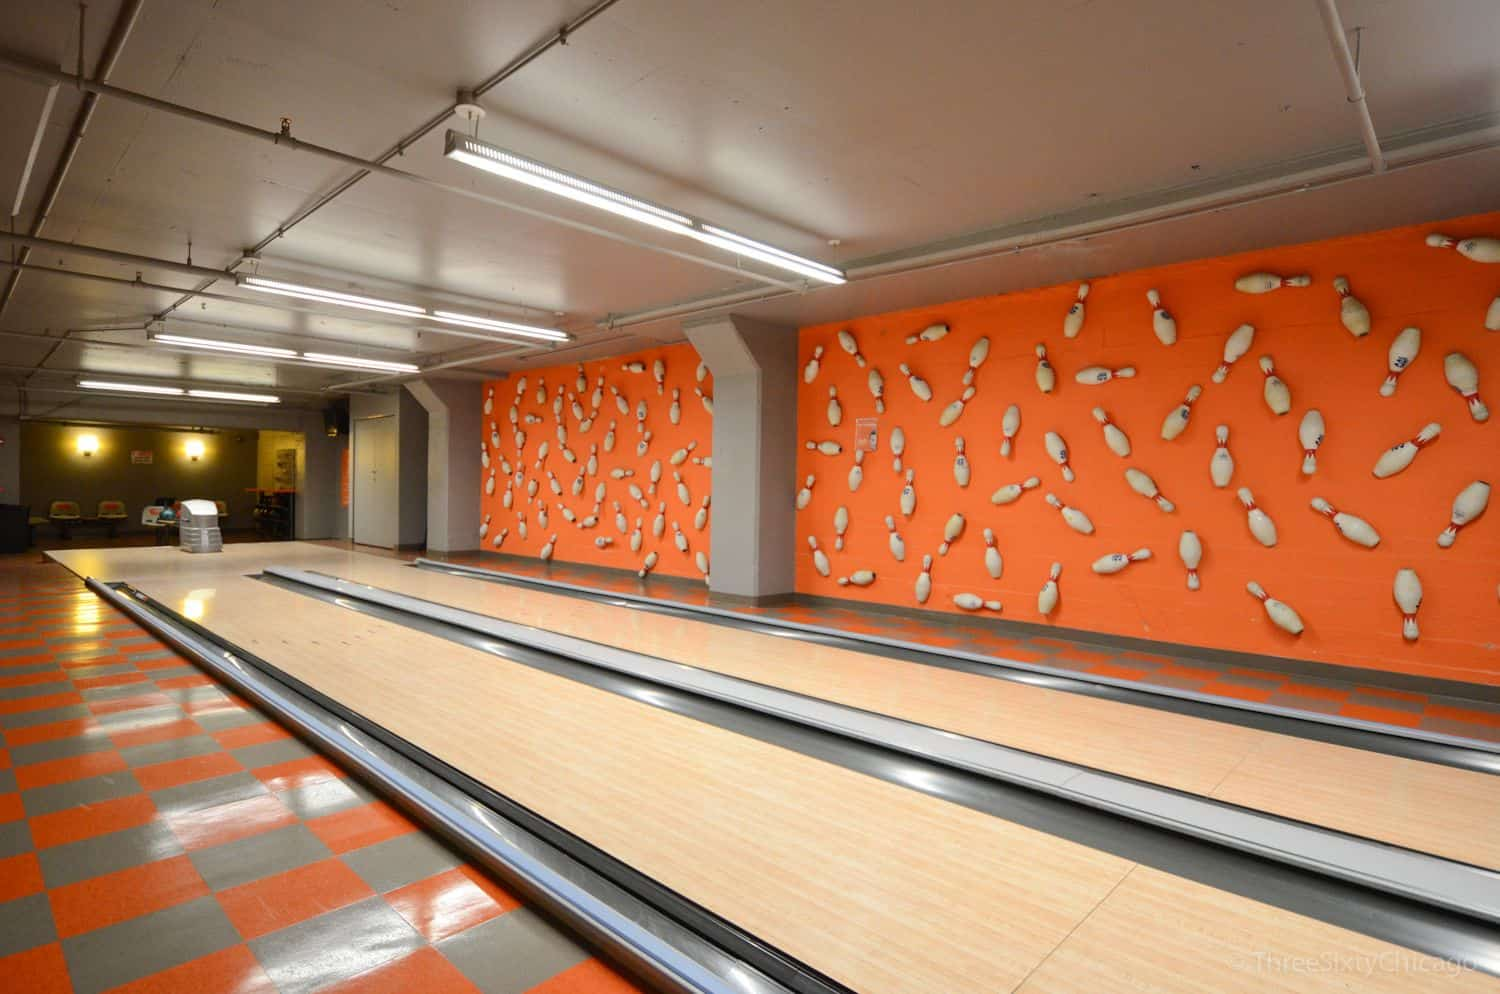 West Loop Junior One Bedroom Condo - 565 W Quincy Street, Unit 1211, Chicago, IL 60661 - Bowling